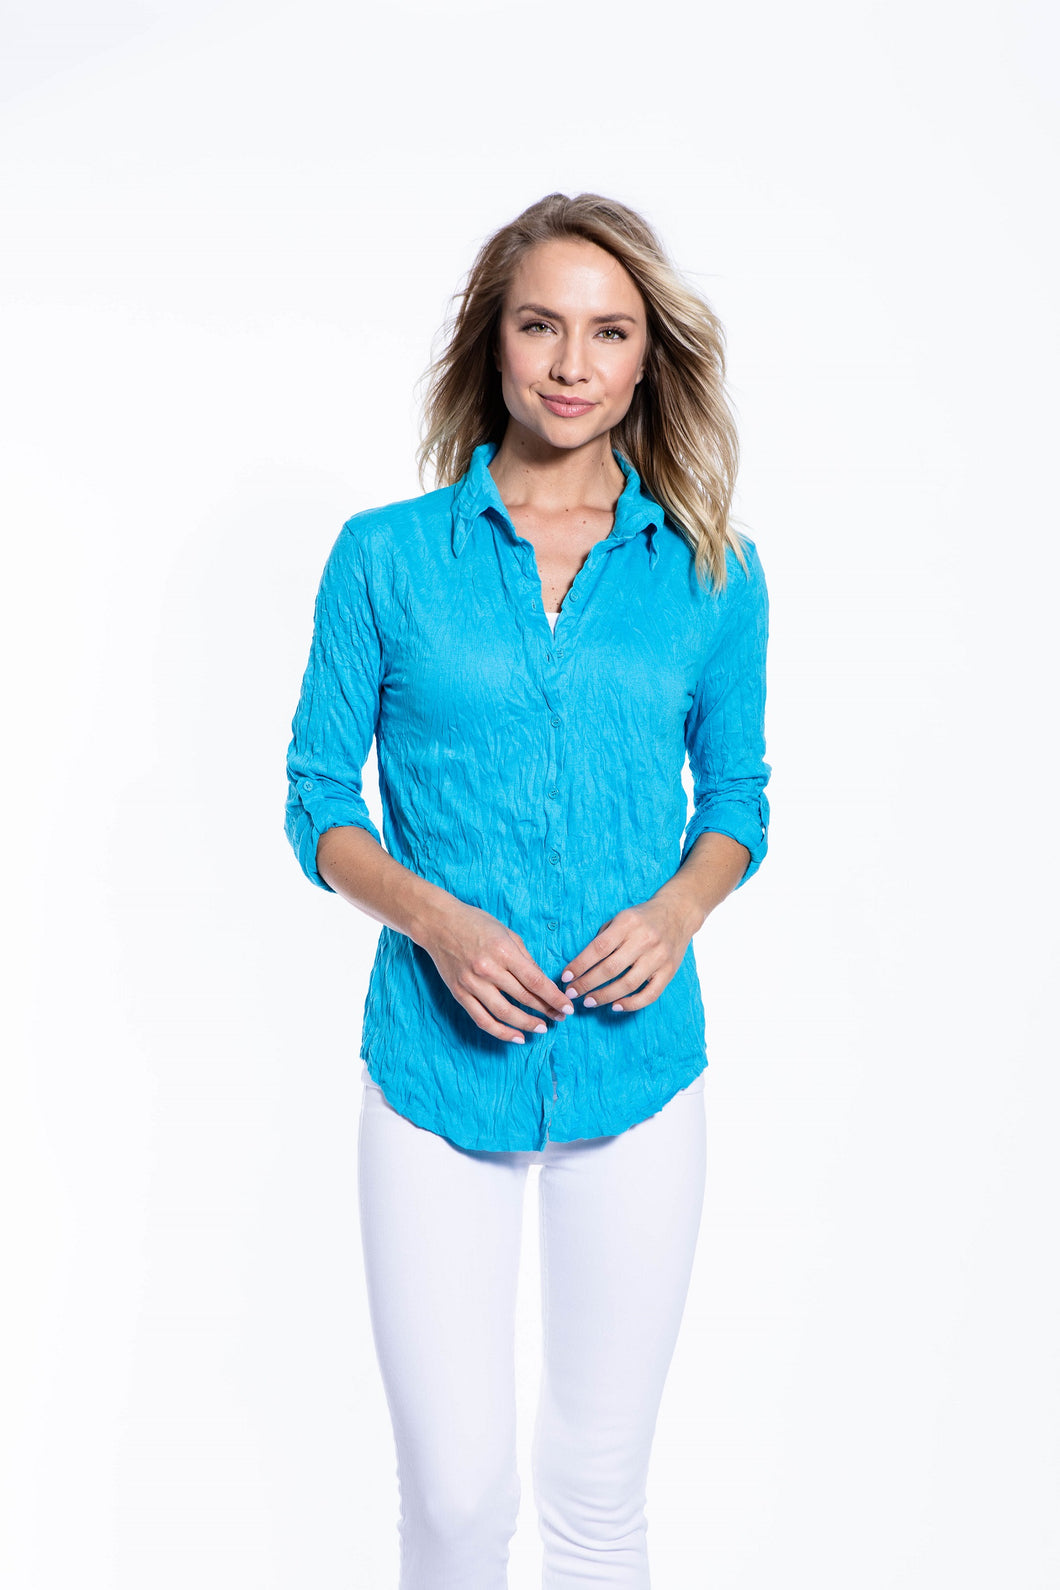 Crinkle Knit Women's Fashion Blouse with Rollup Sleeves - Cyan - Ondululations womens silk dresses